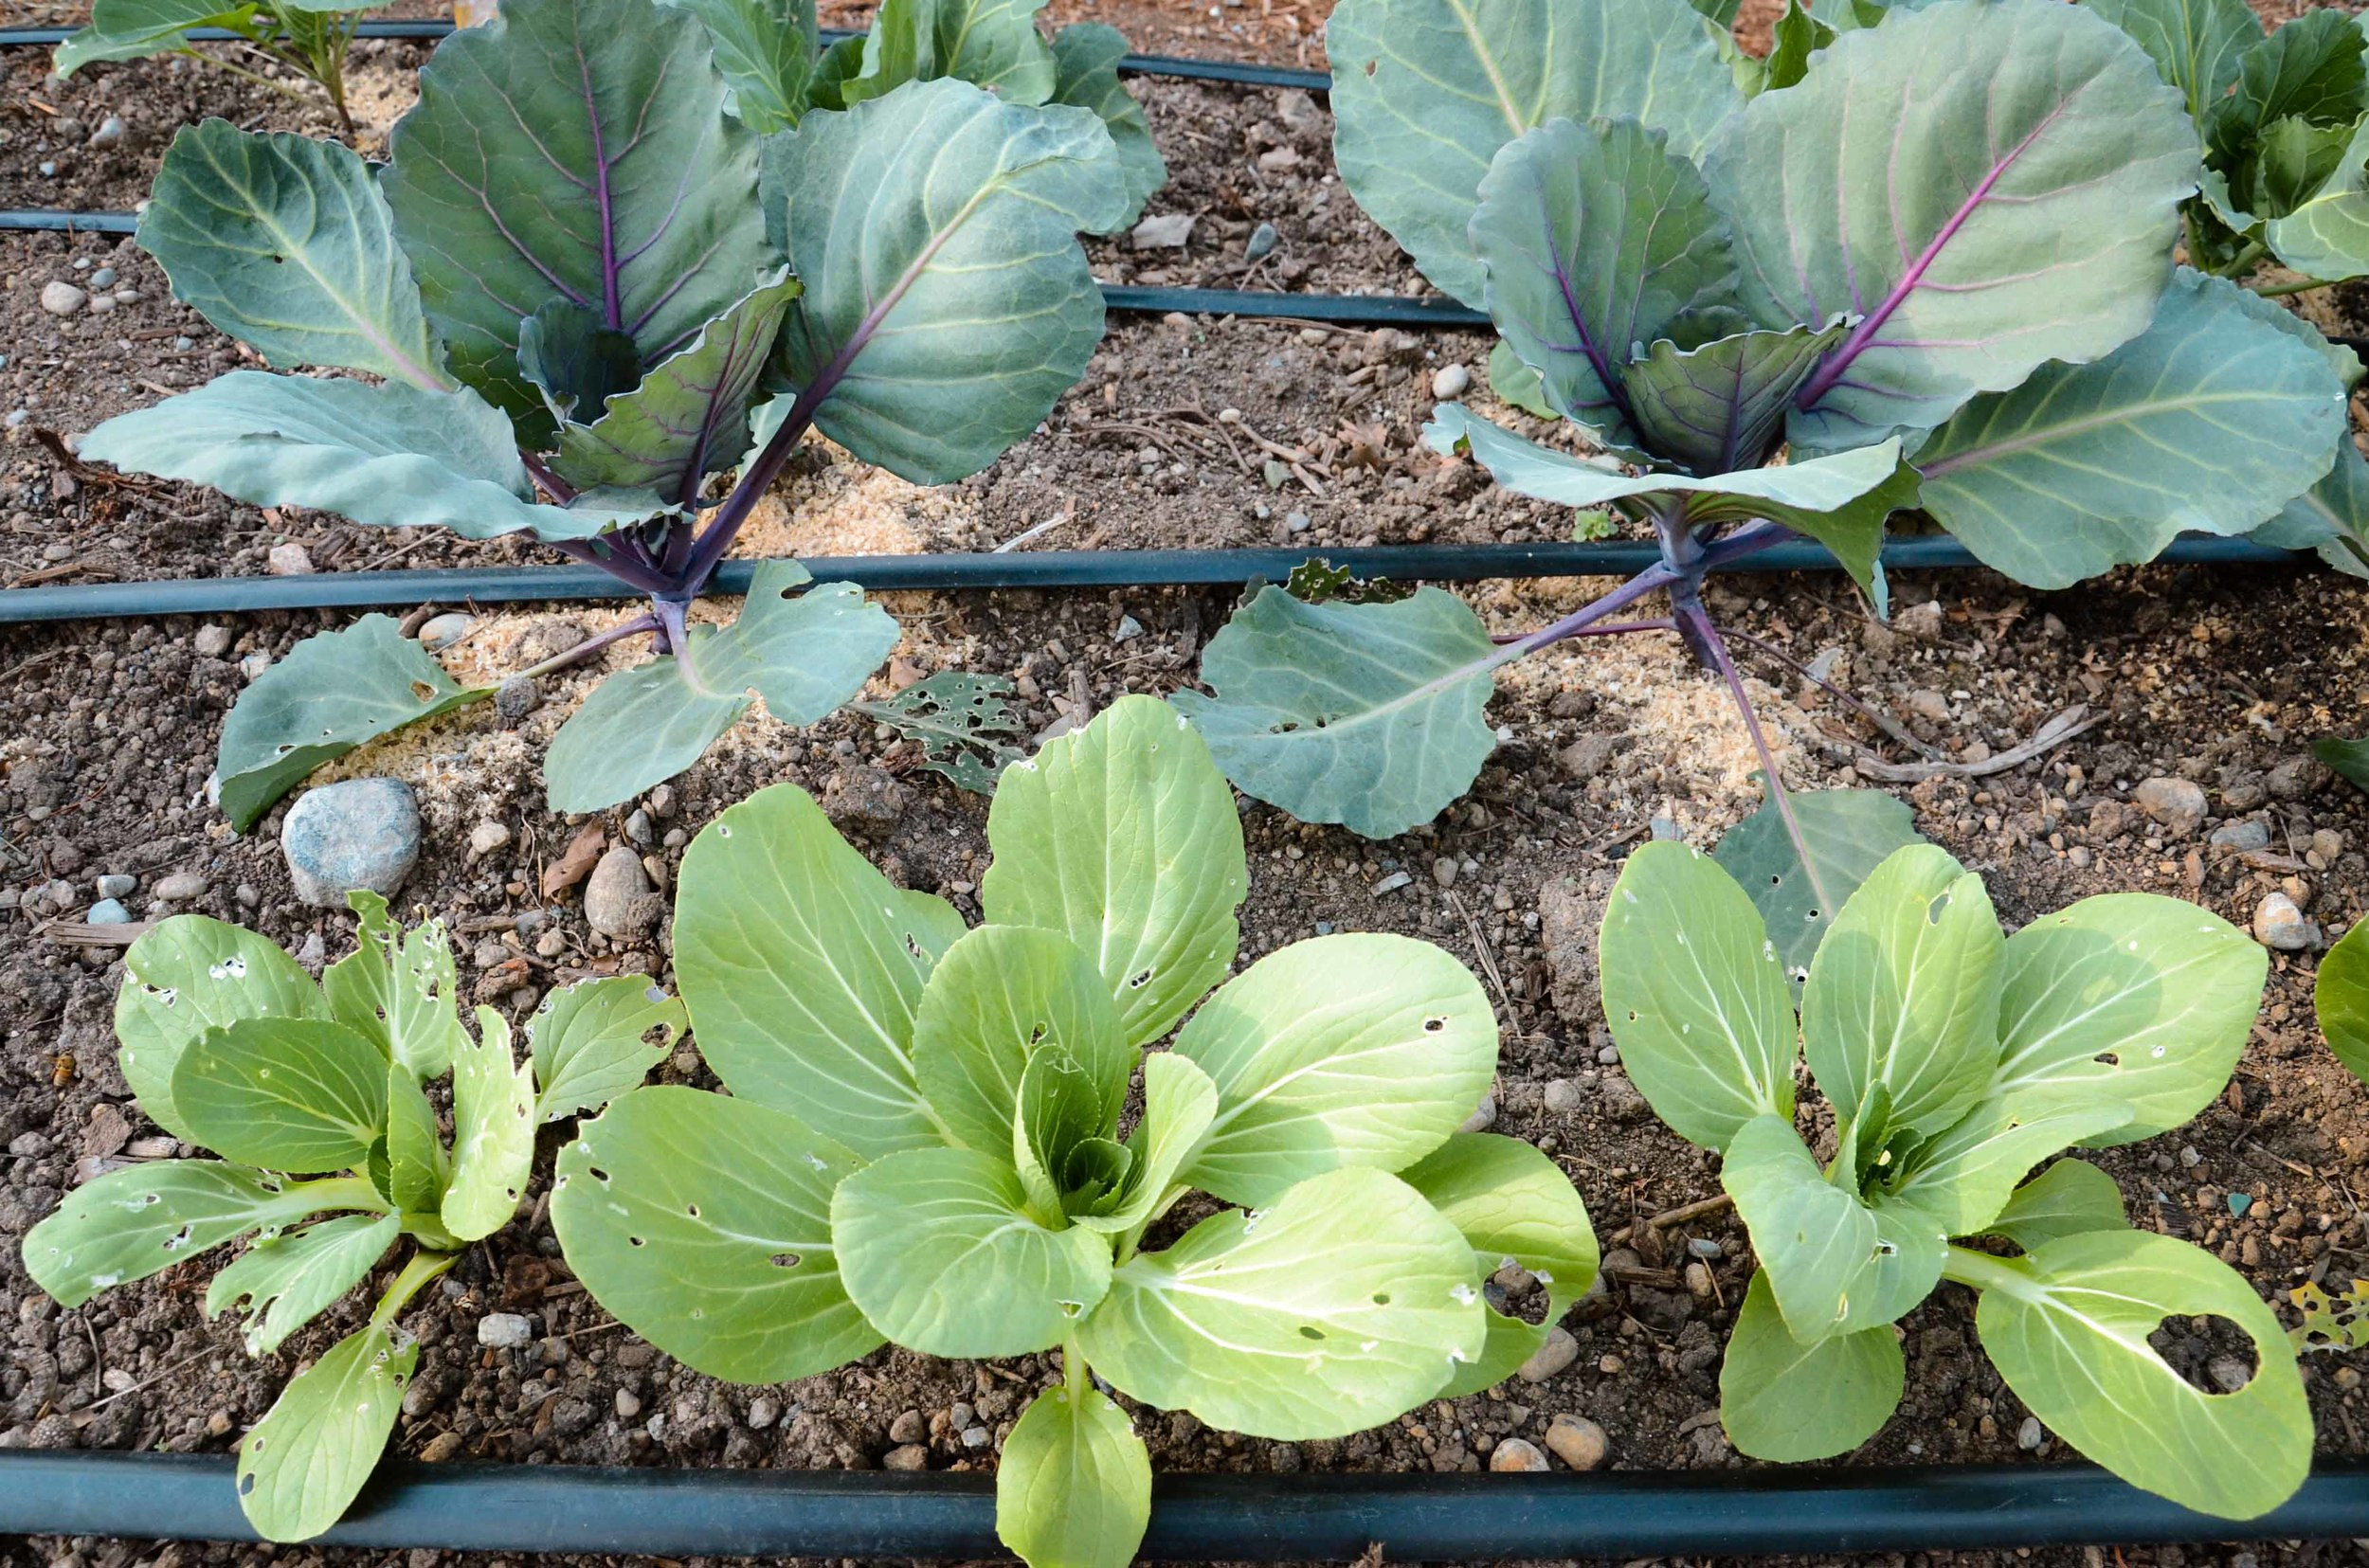 Imported Cabbage Worm damage on cabbage // All photos by Hilary Dahl